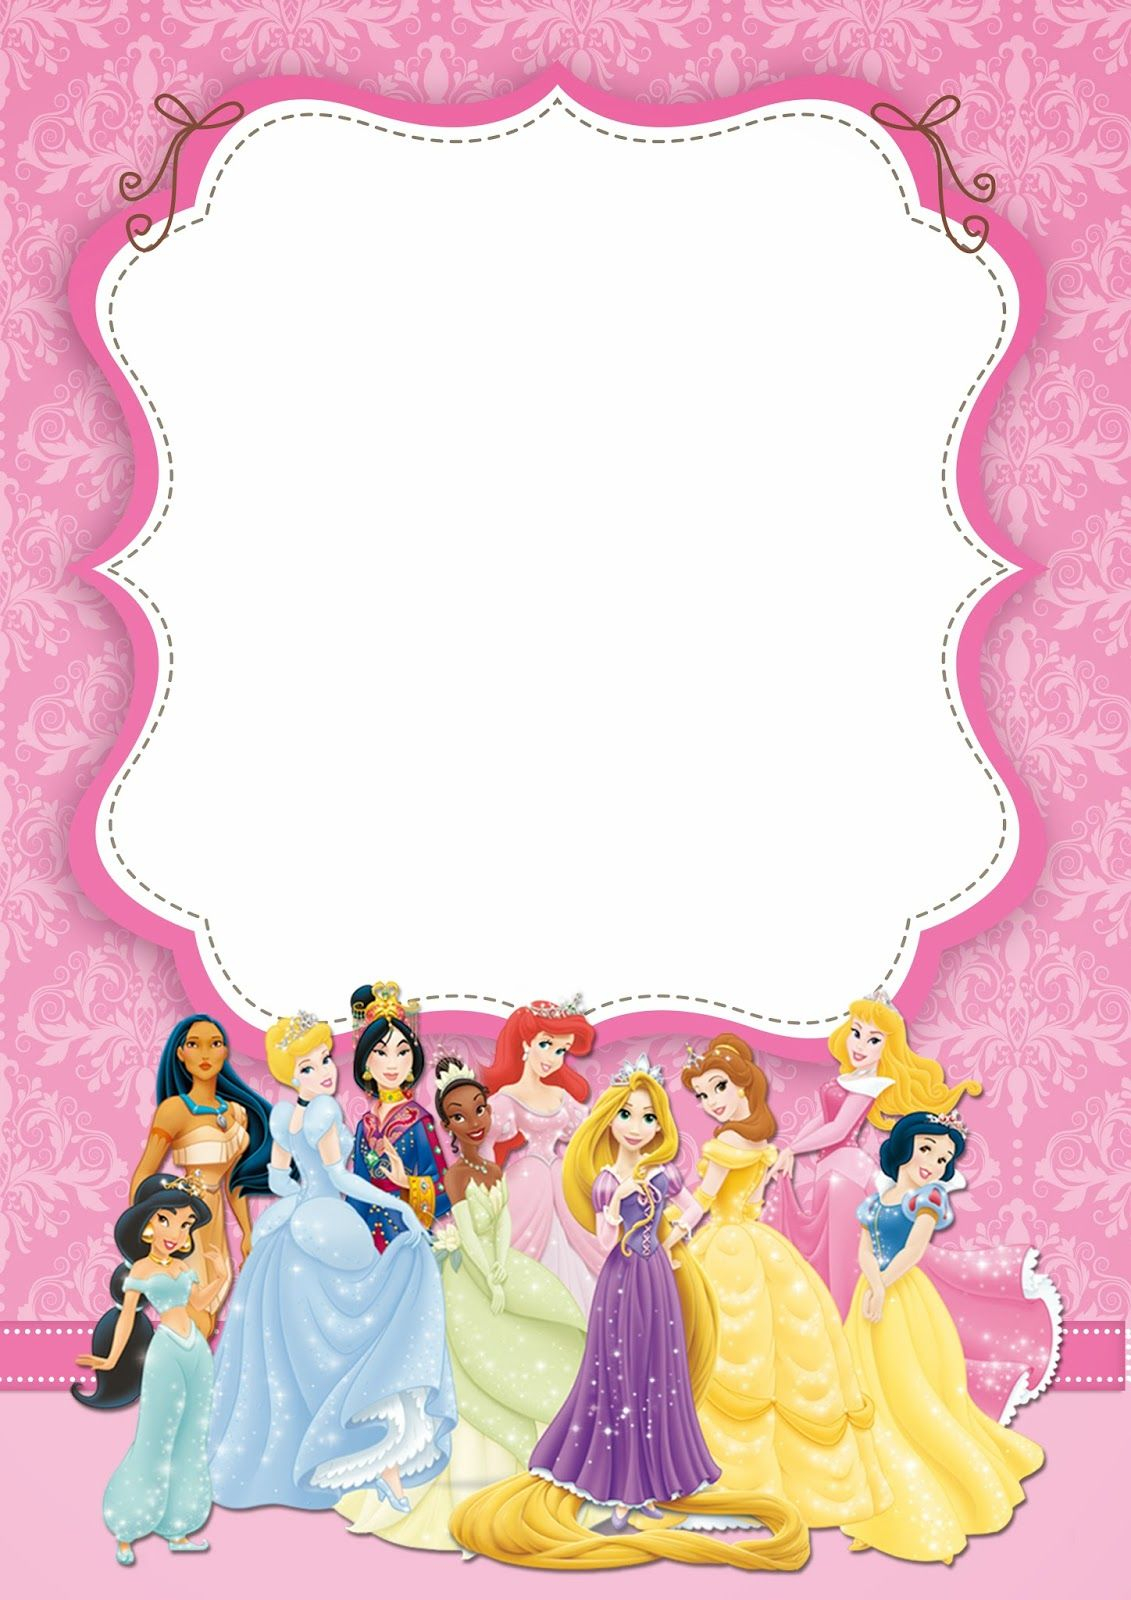 Free Printable Disney Princess Ticket Invitation Pink And Gold in size 1131 X 1600